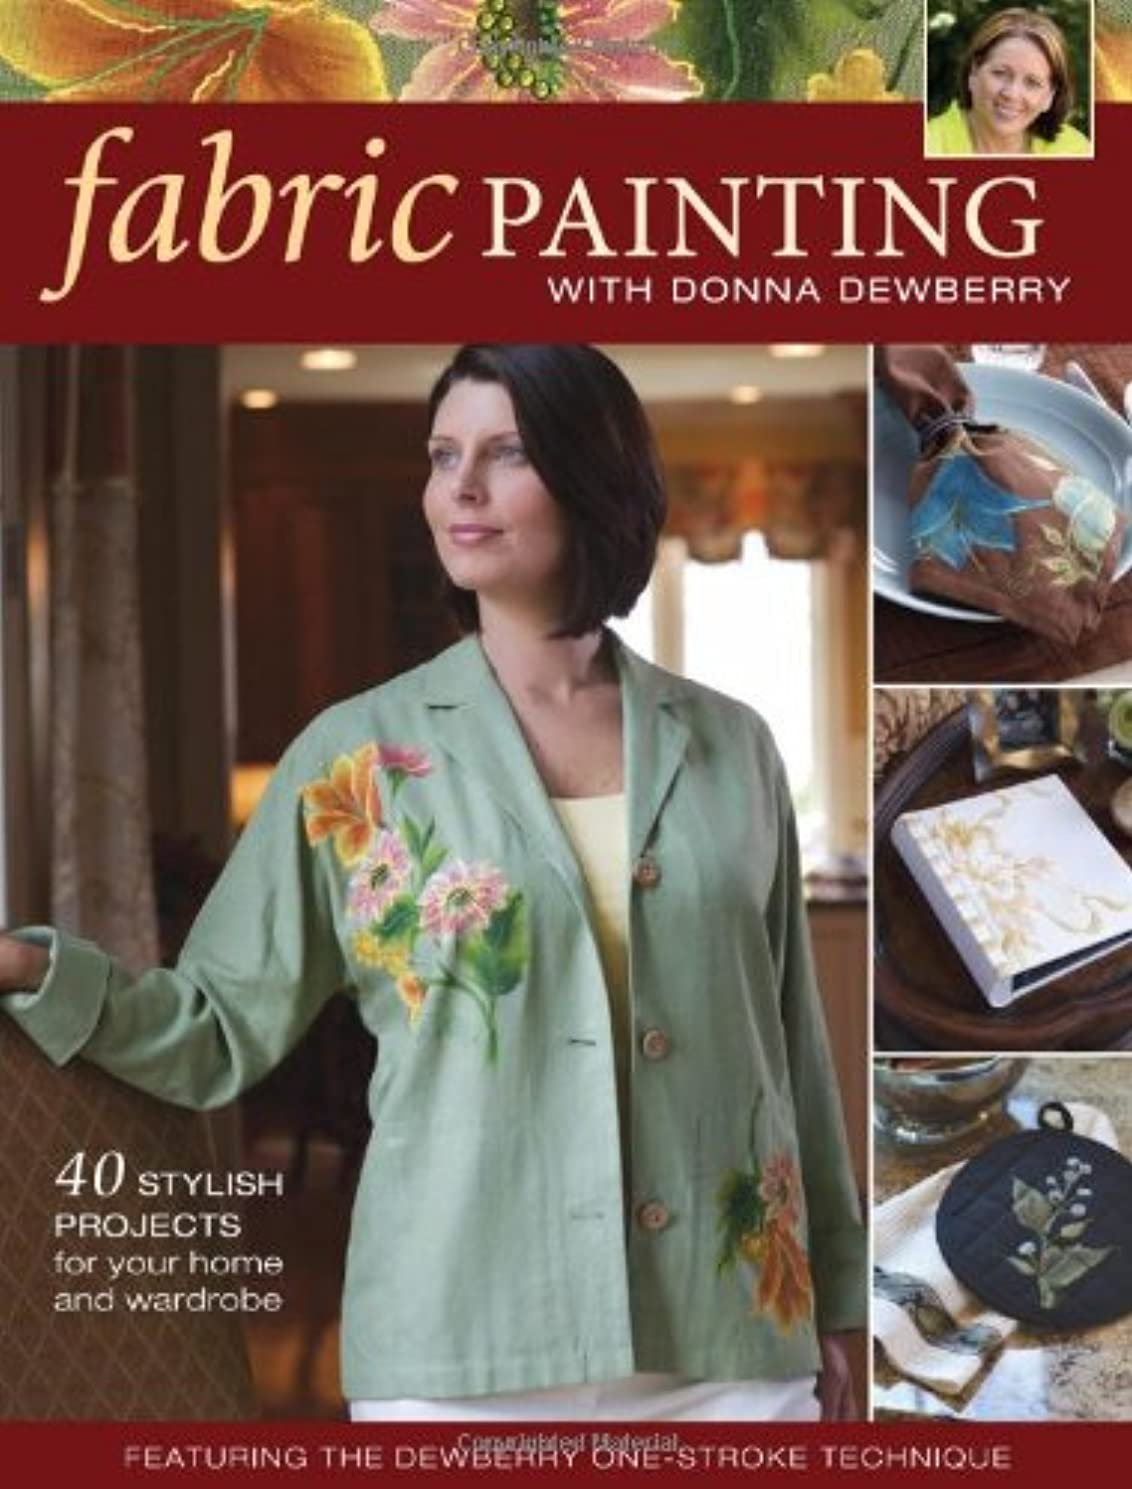 Fabric Painting with Donna Dewberry: 40 Stylish Projects for Your Home & Wardrobe